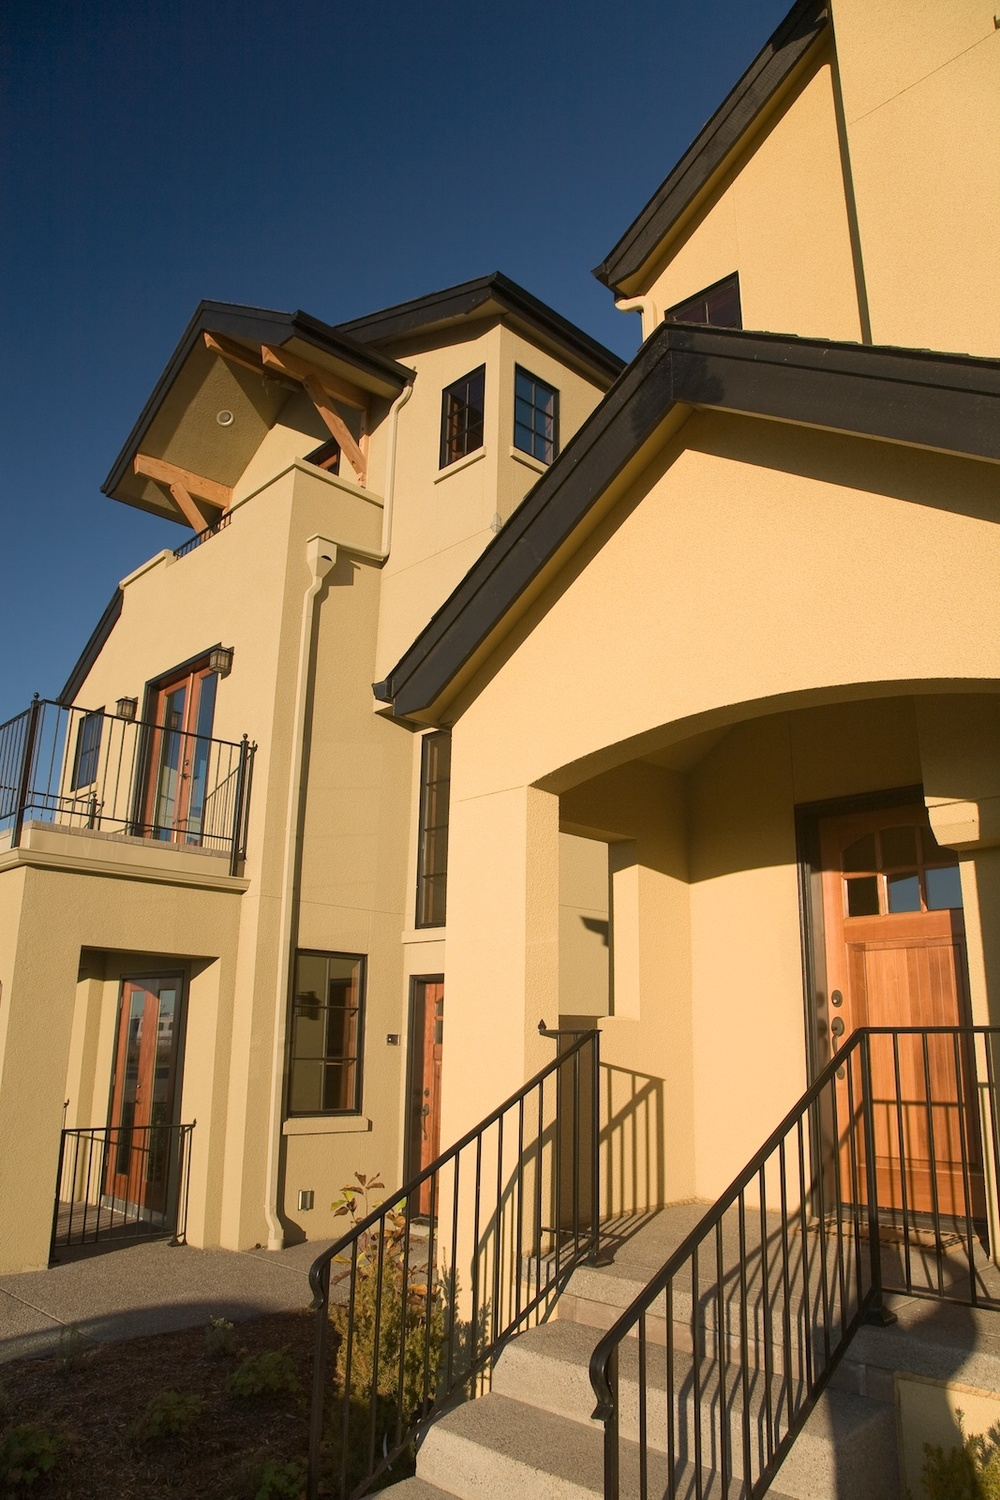 0517_17_CVTownhomes_Vertical7.jpg